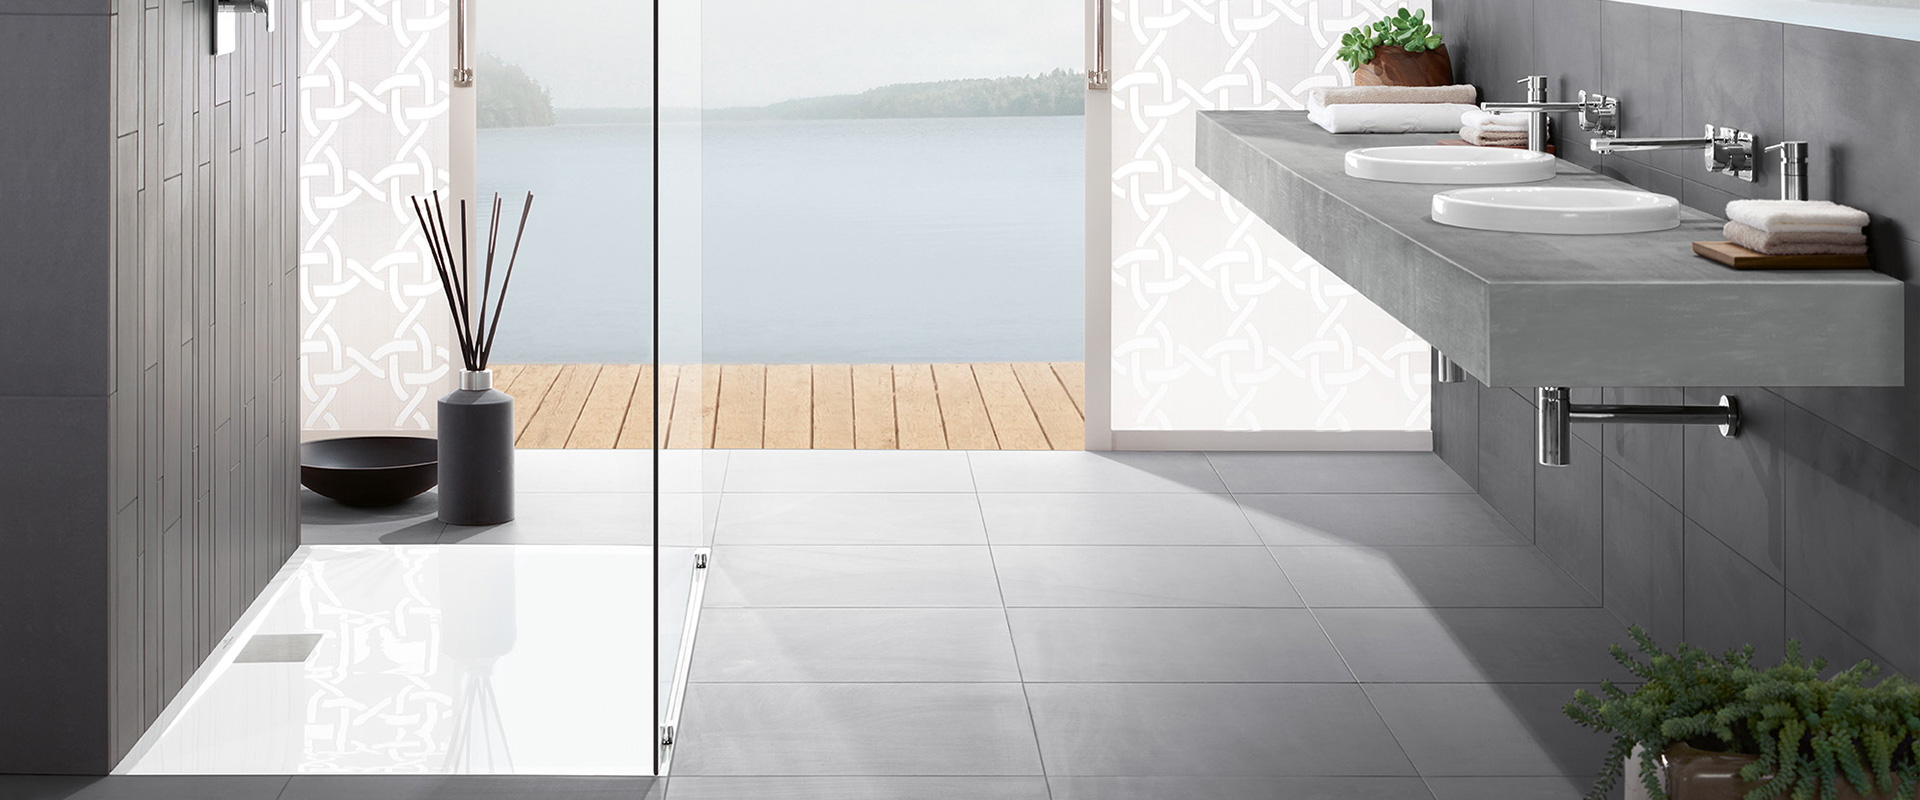 architectura metalrim ultraflaches dusch design. Black Bedroom Furniture Sets. Home Design Ideas